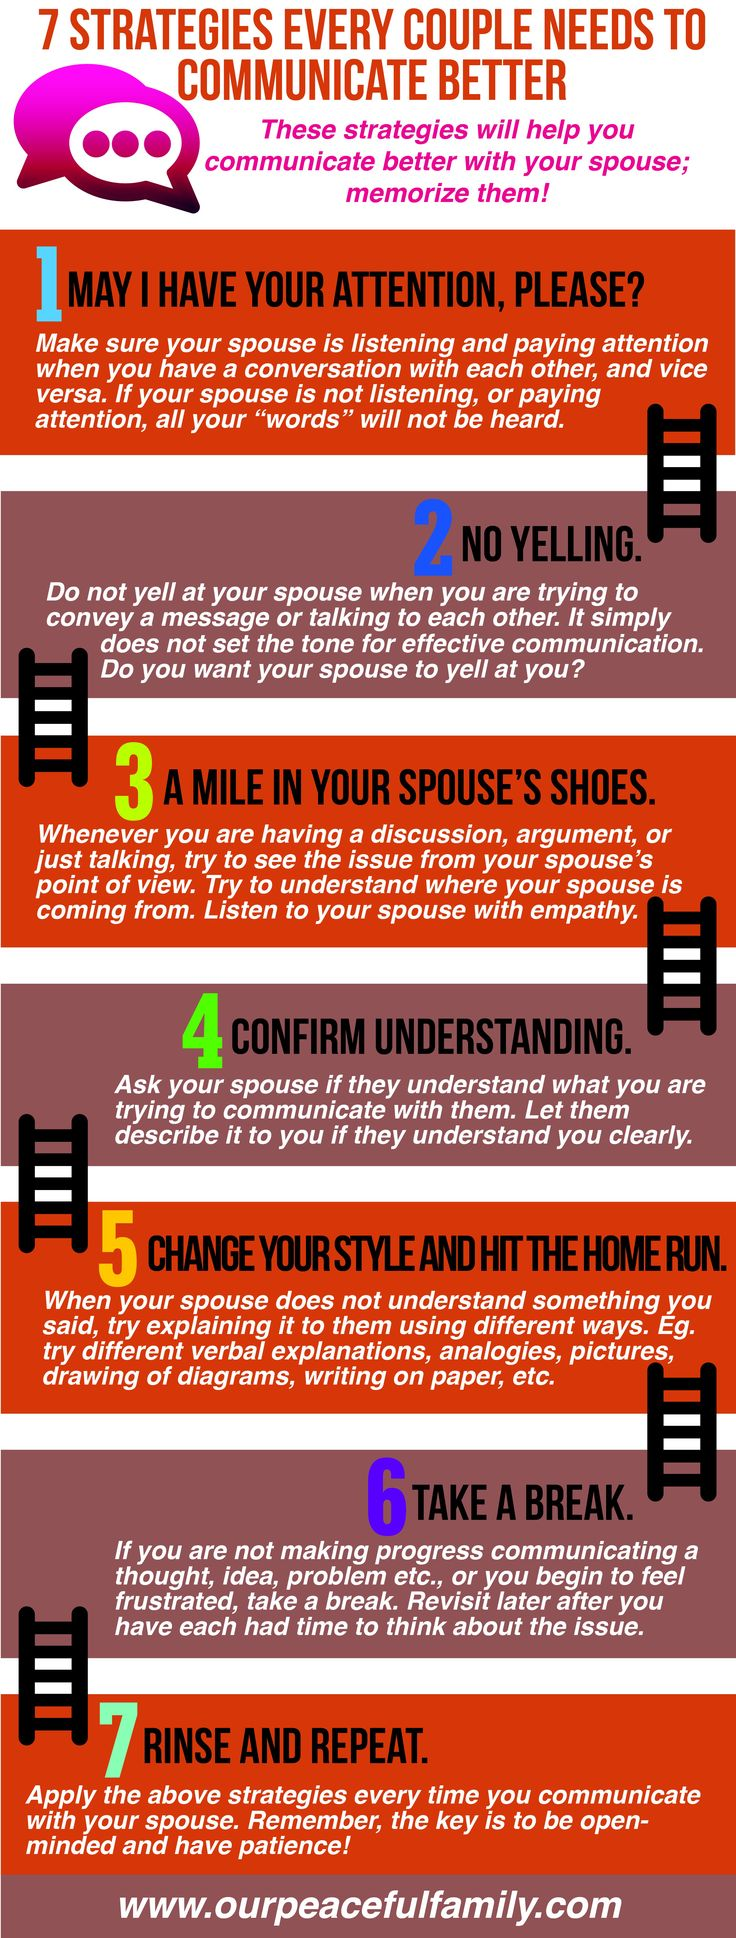 7 ways to improve communication in marriage #marriagetips #marriage #communication